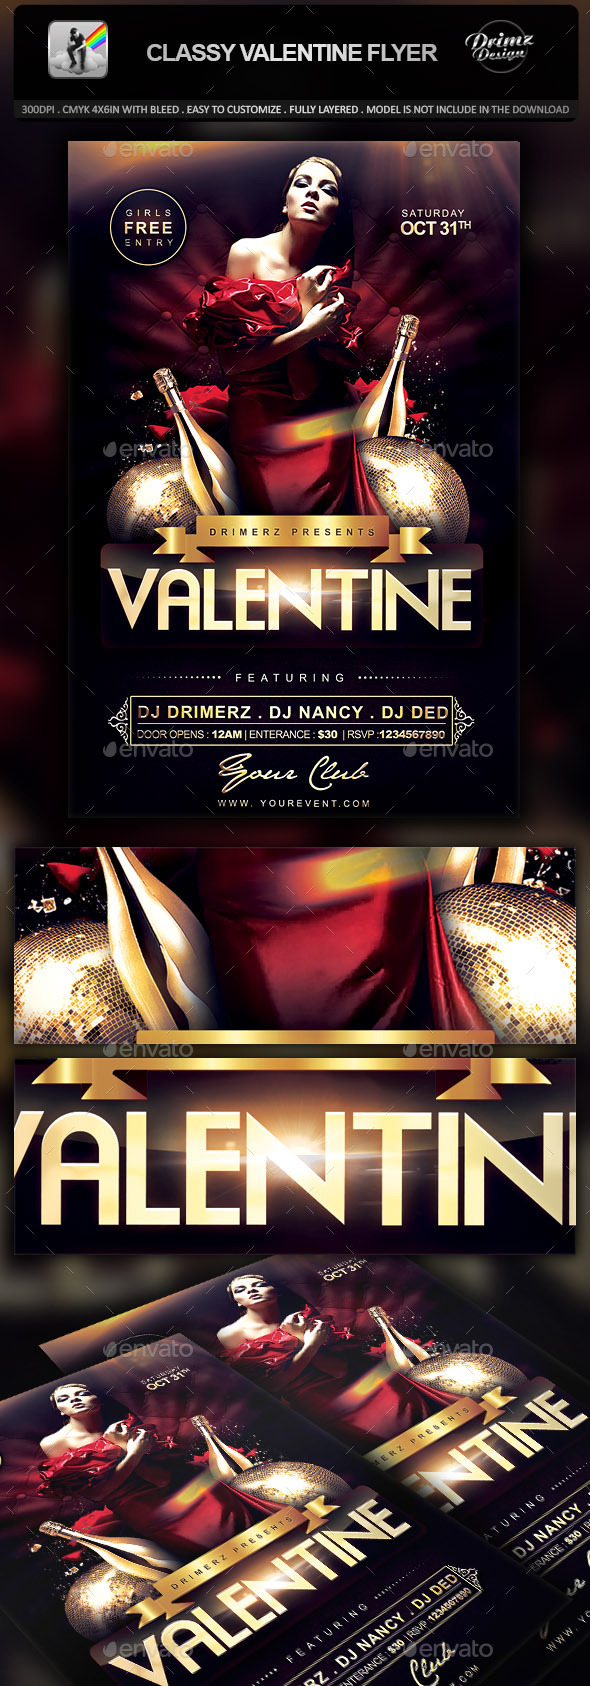 Classy Valentine Flyer - Events Flyers